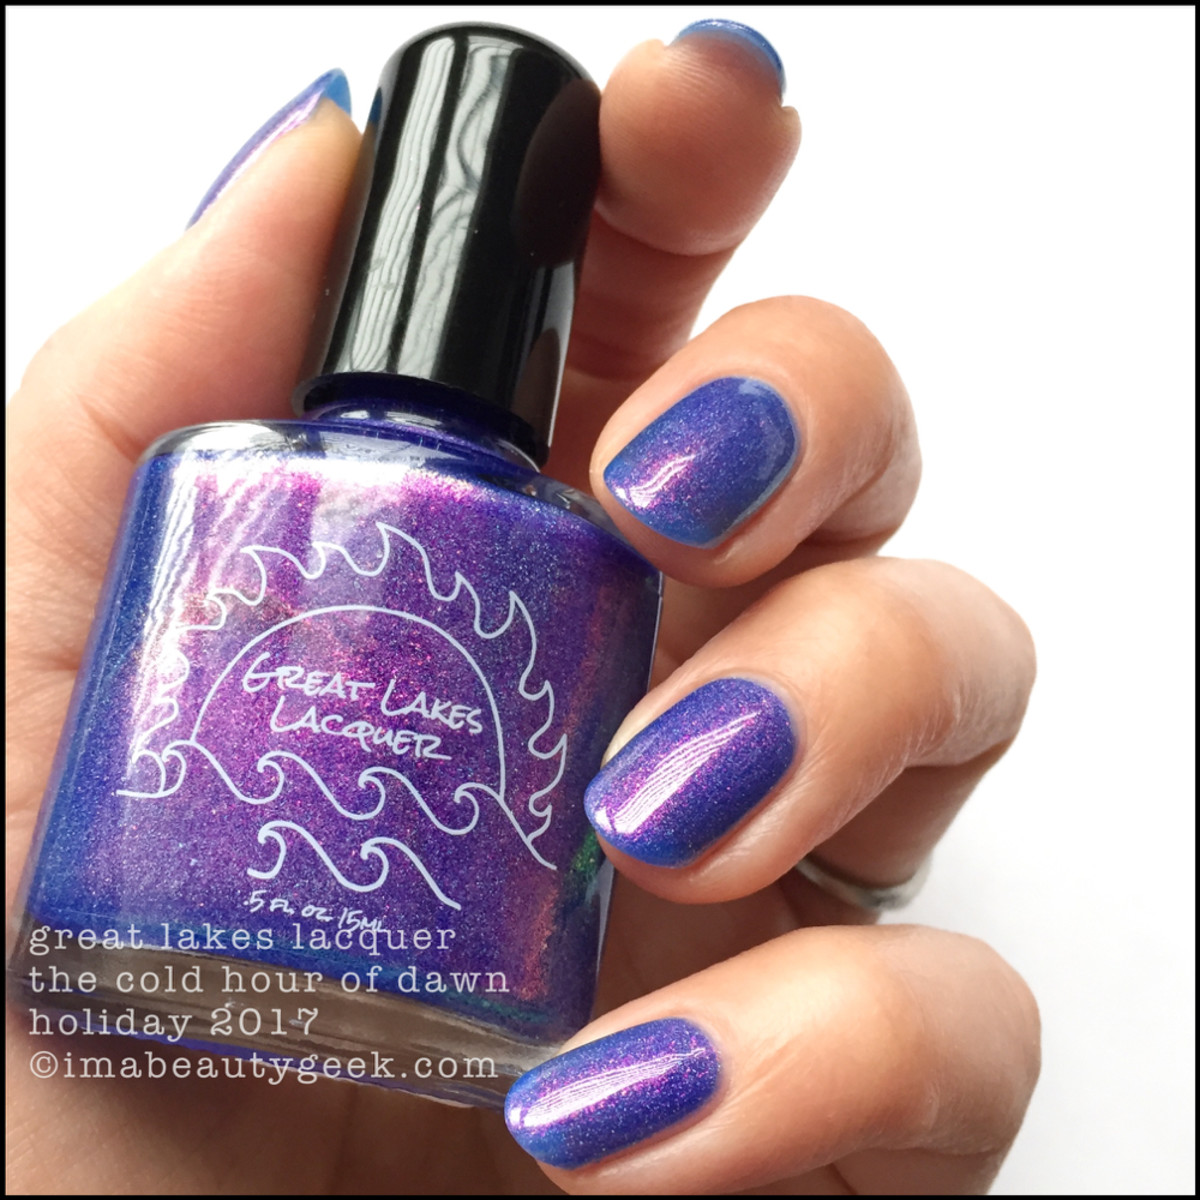 Great Lakes Lacquer The Cold Hour of Dawn _ Great Lakes Lacquer Holiday 2017